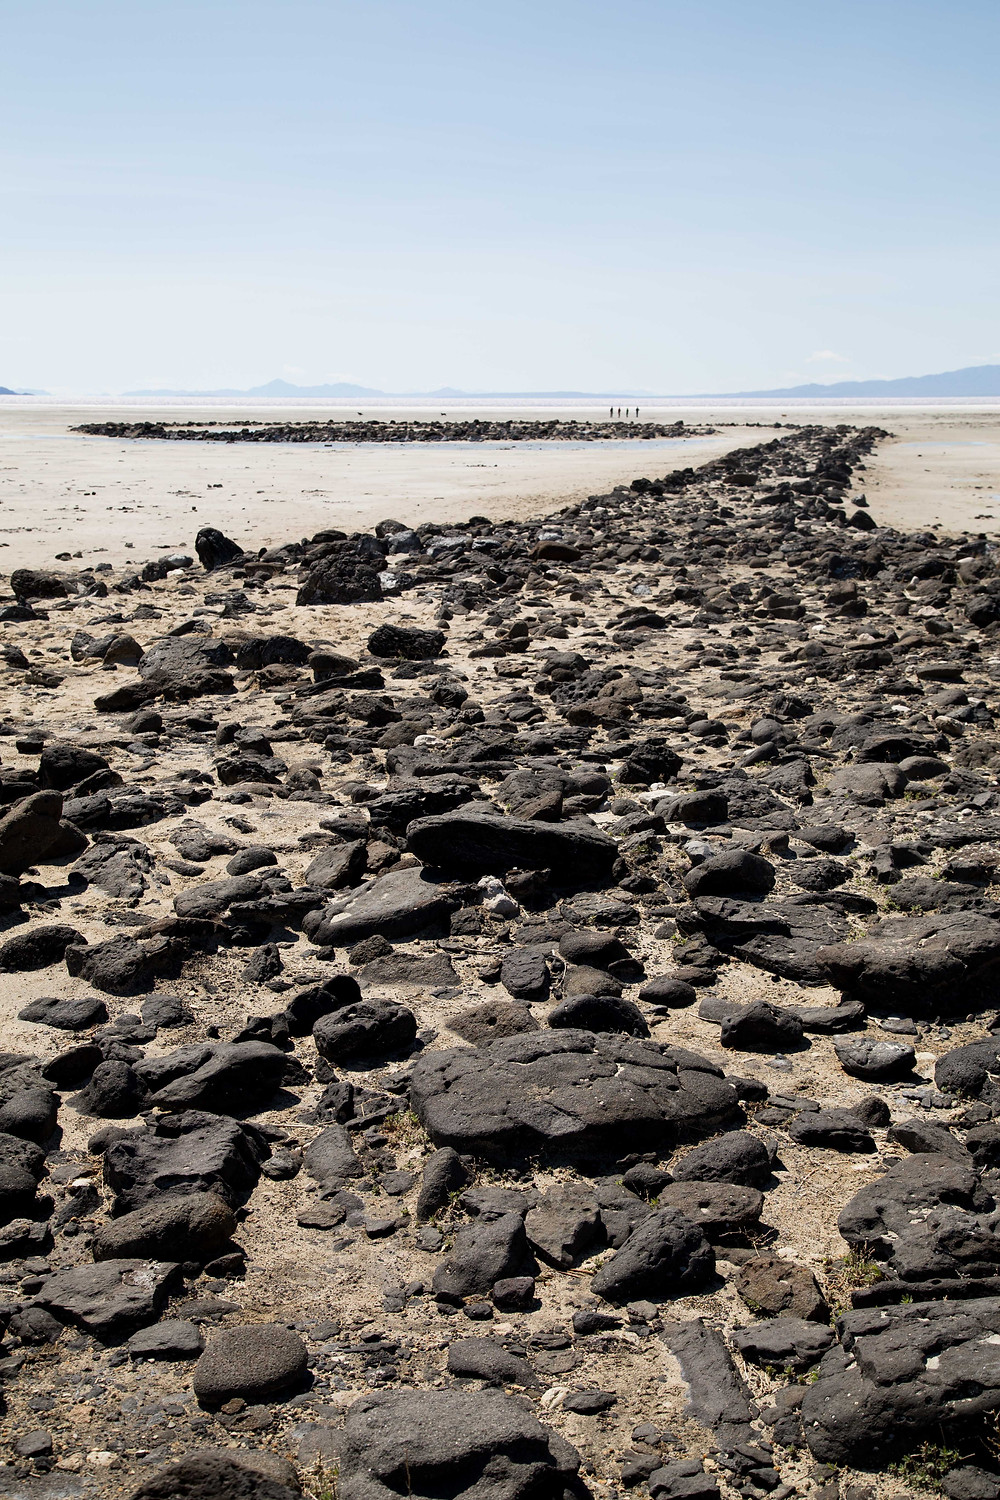 Large black basalt rocks make up the coil of the Spiral Jetty on the shore of the Great Salt Lake in Utah